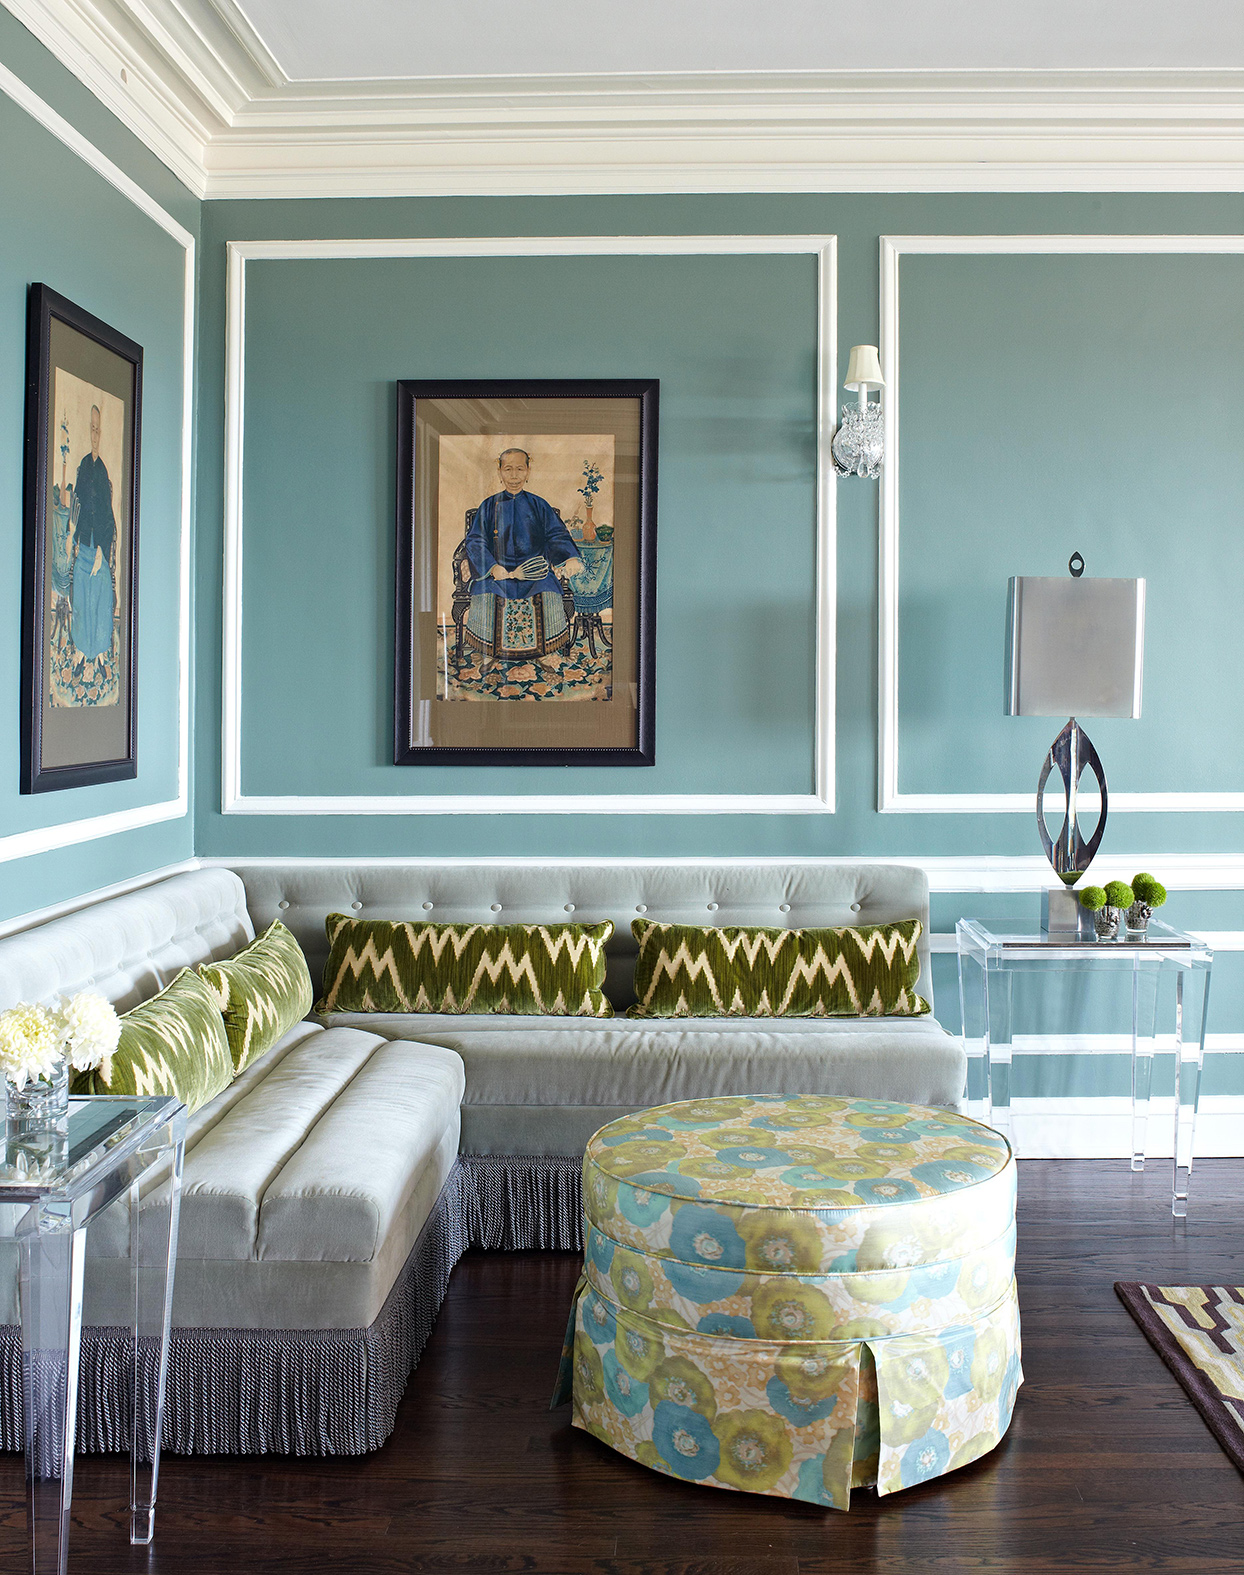 green and blue sitting room with paintings on walls